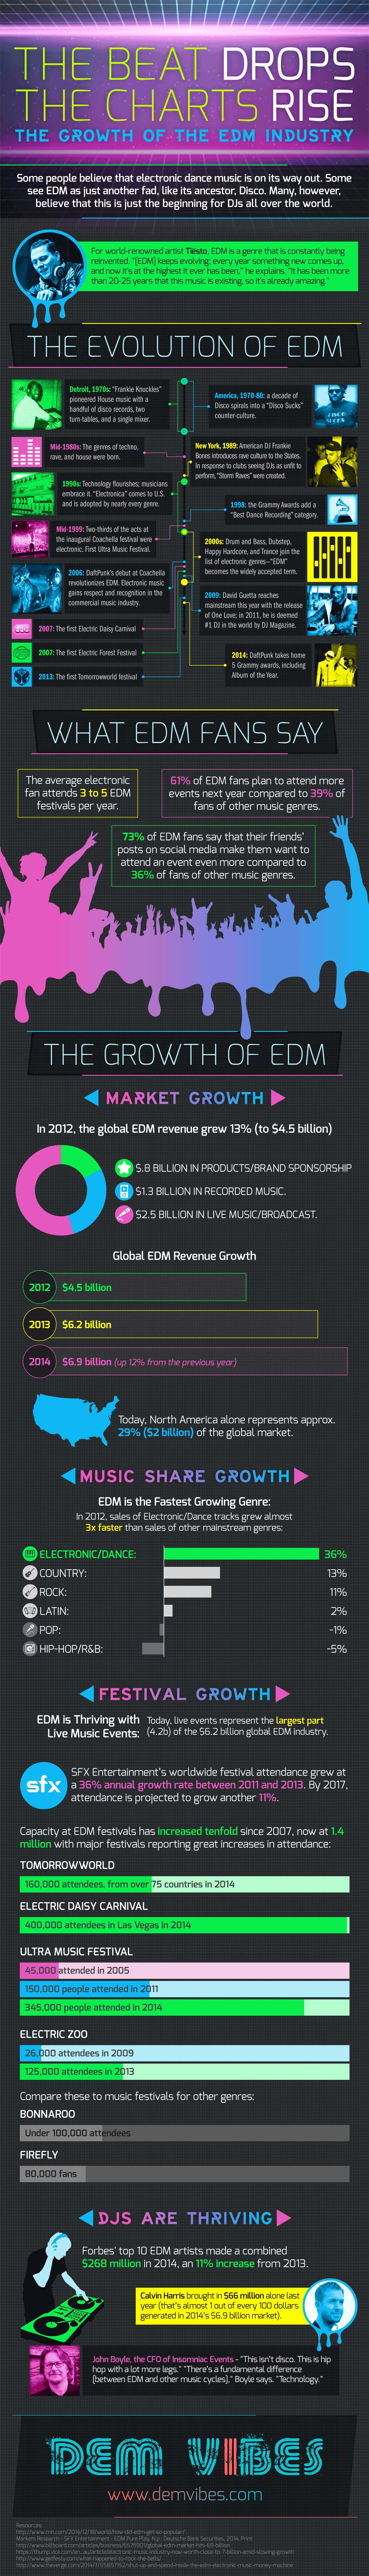 The Beat Drops, the Charts Rise: the Growth of the EDM Industry